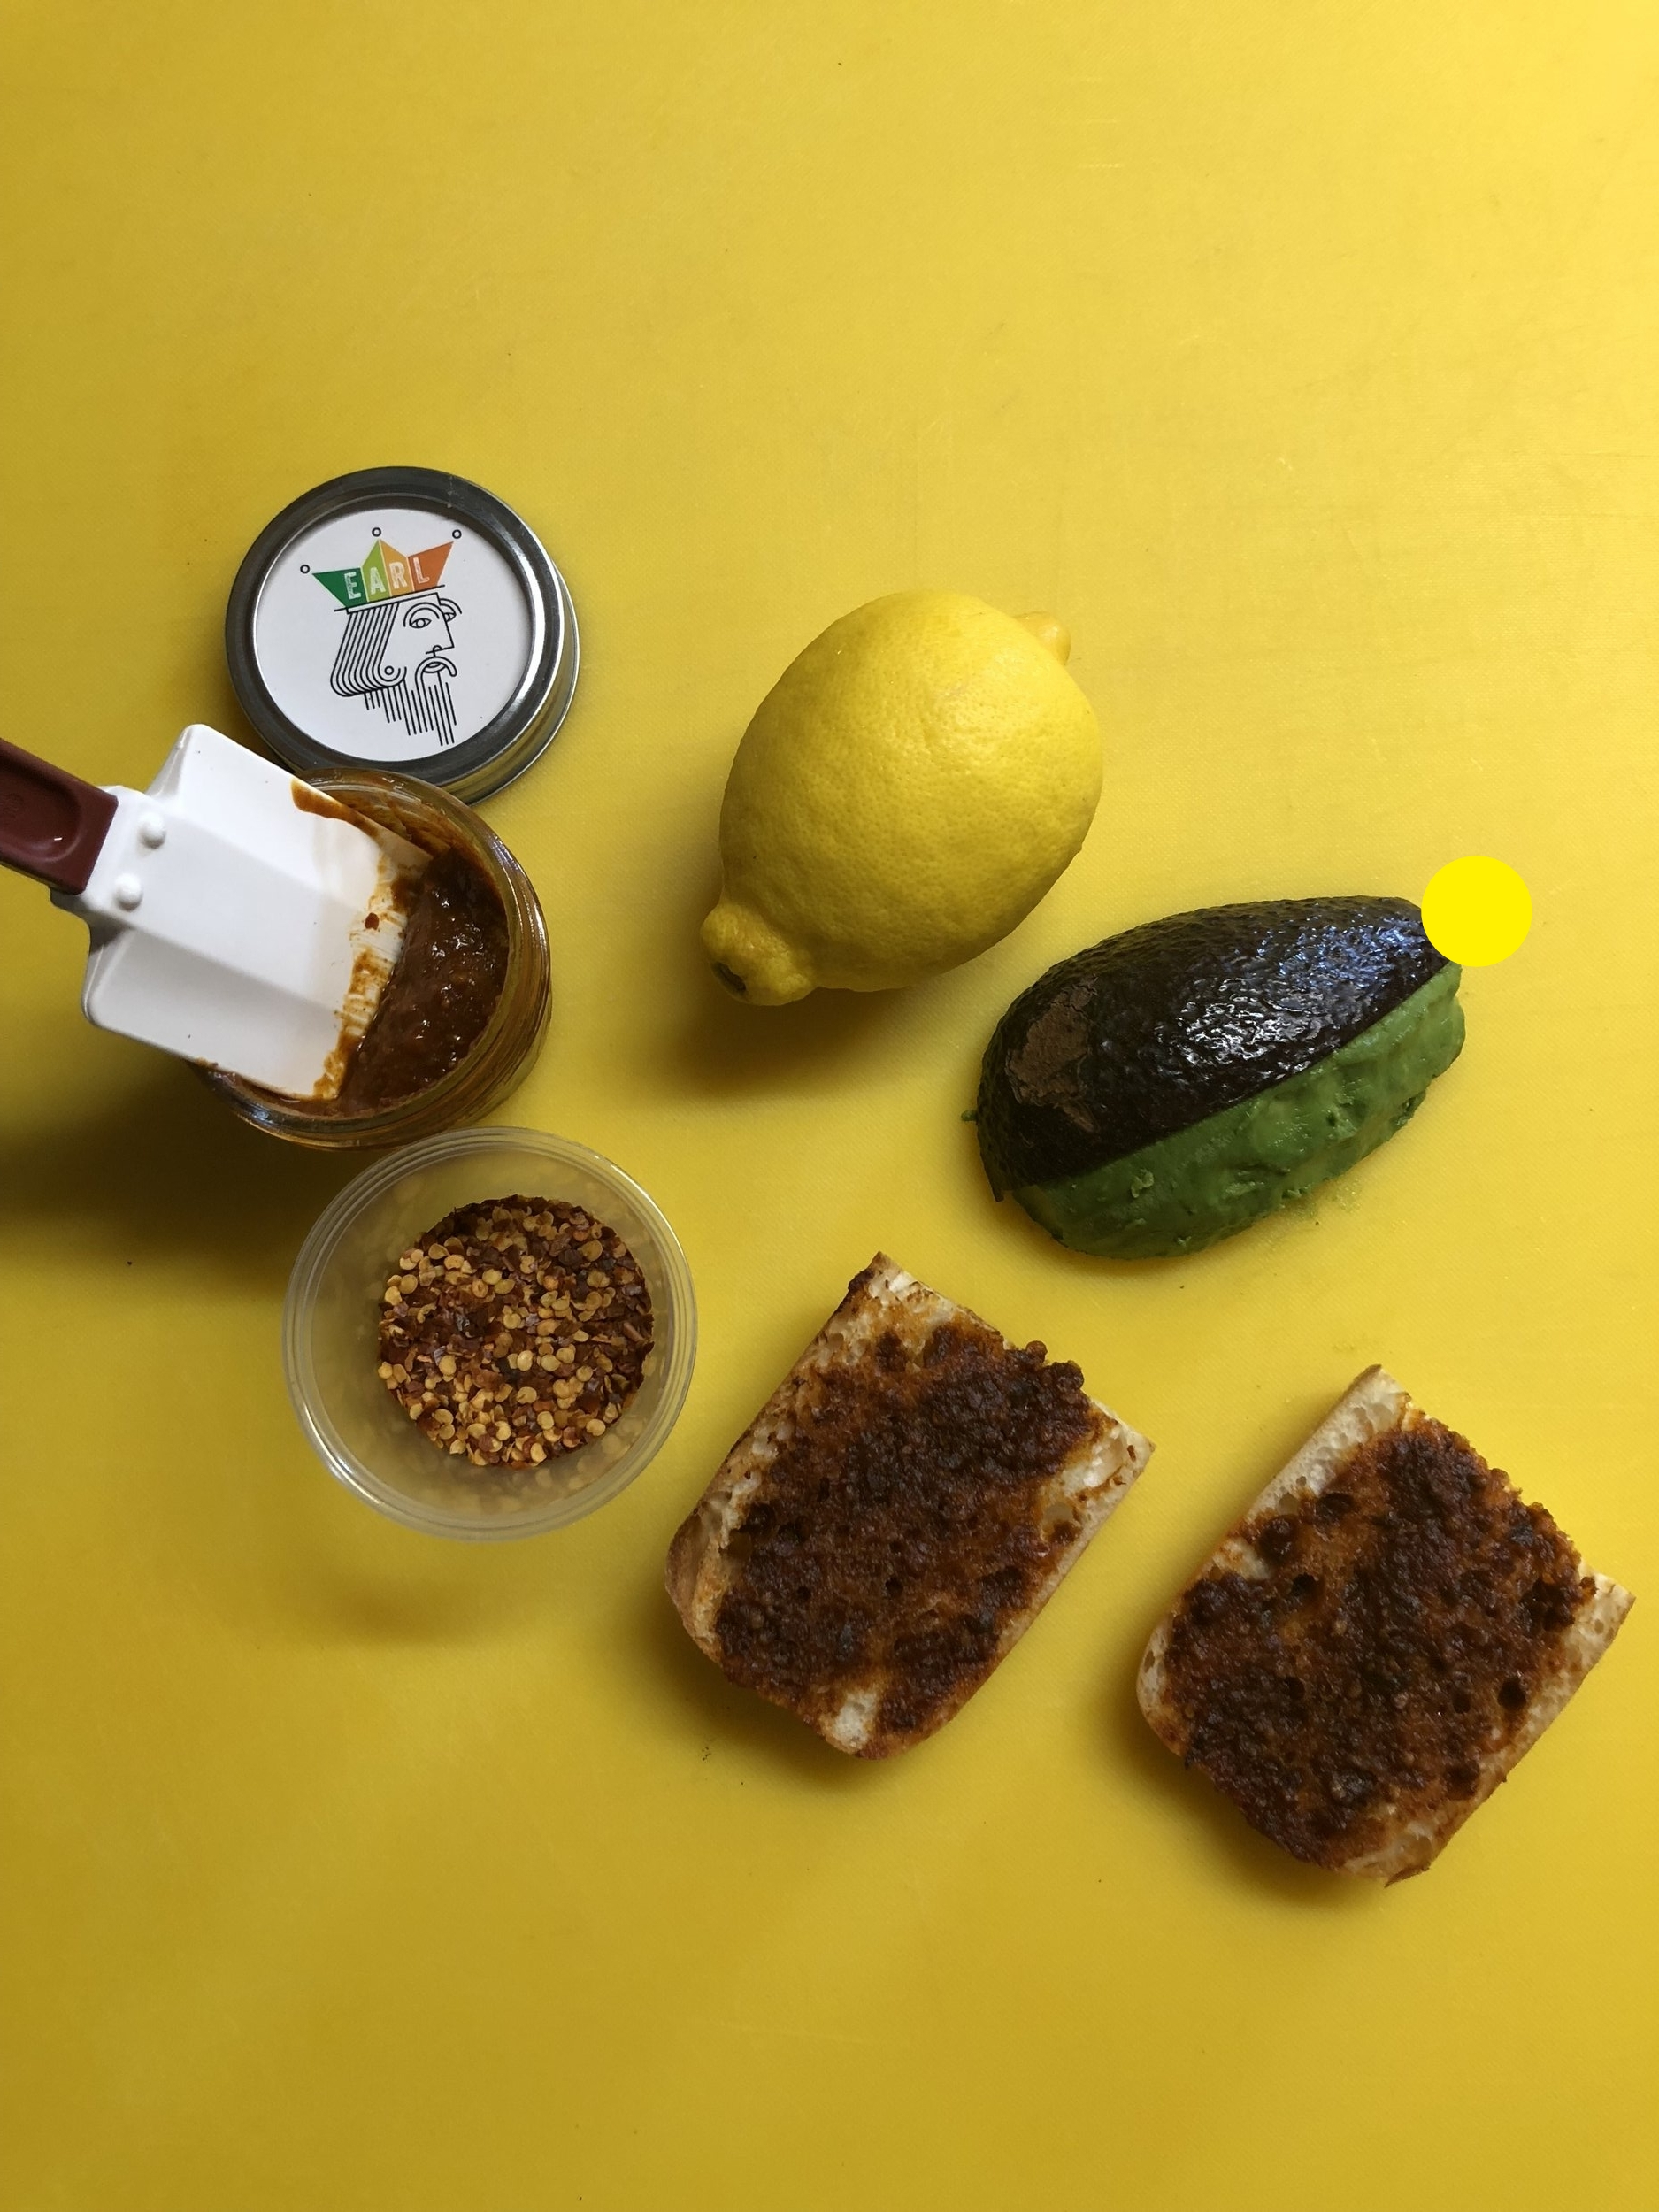 PEEL YOUR AVOCADO - butter your bread